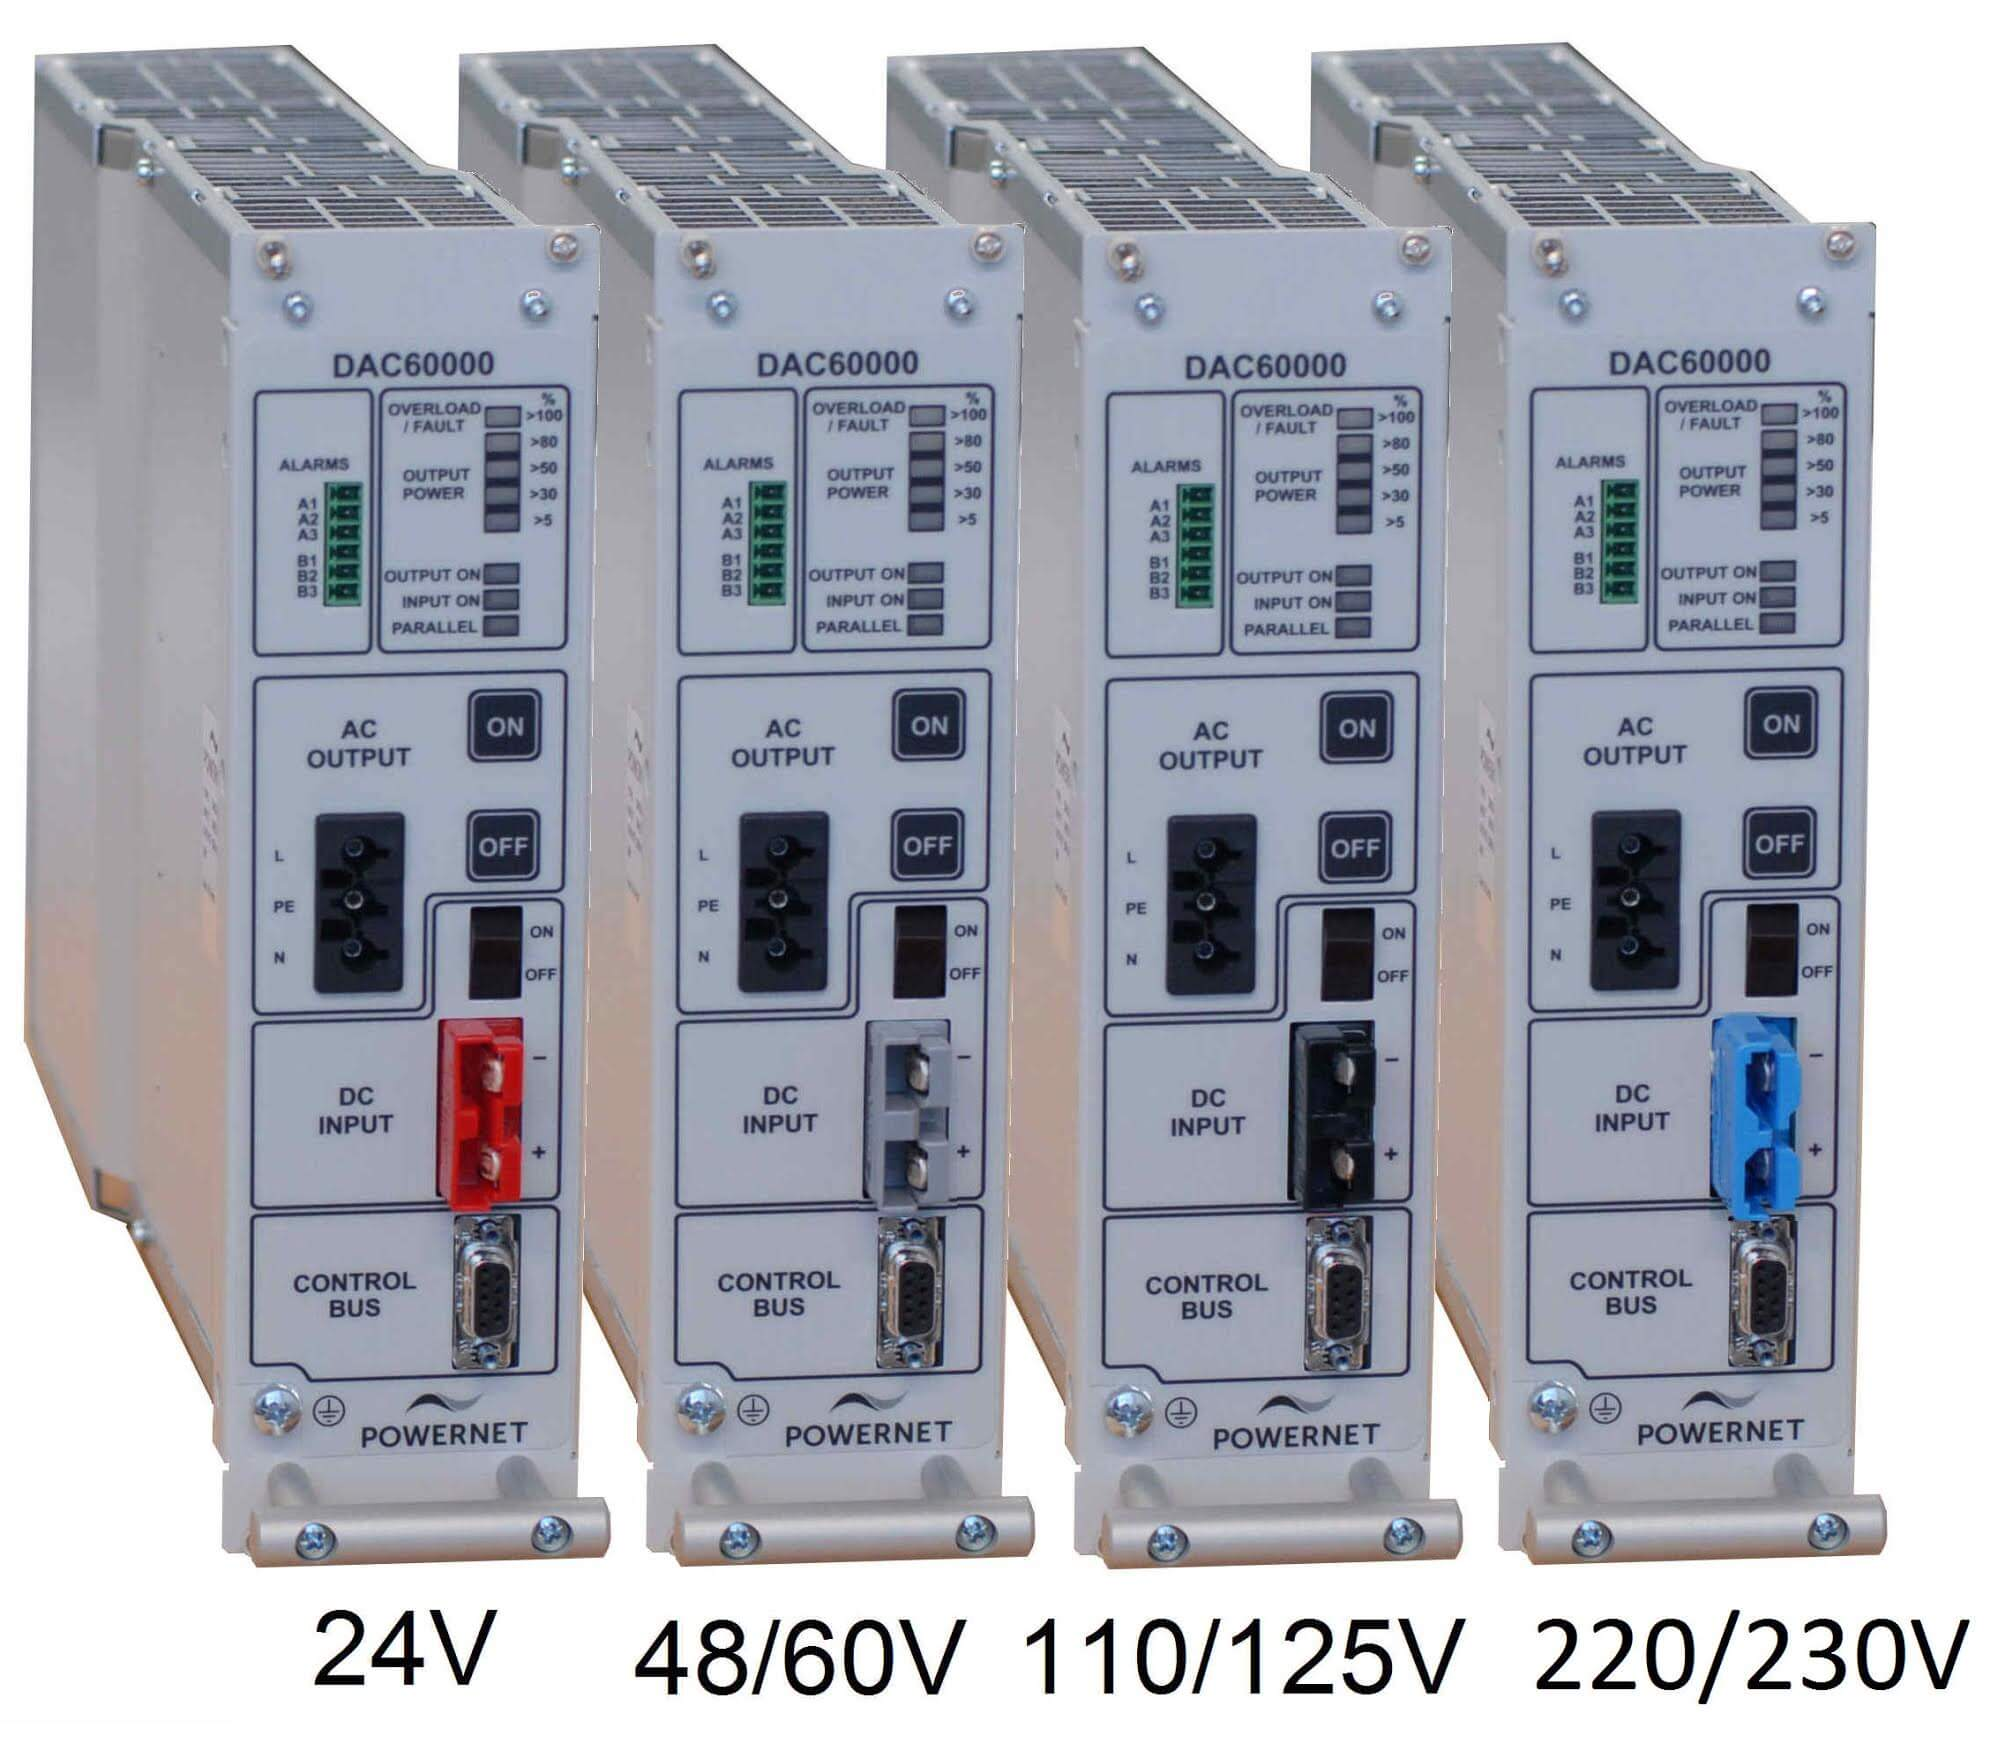 Powernet DAC60000 Modular Inverter Systems